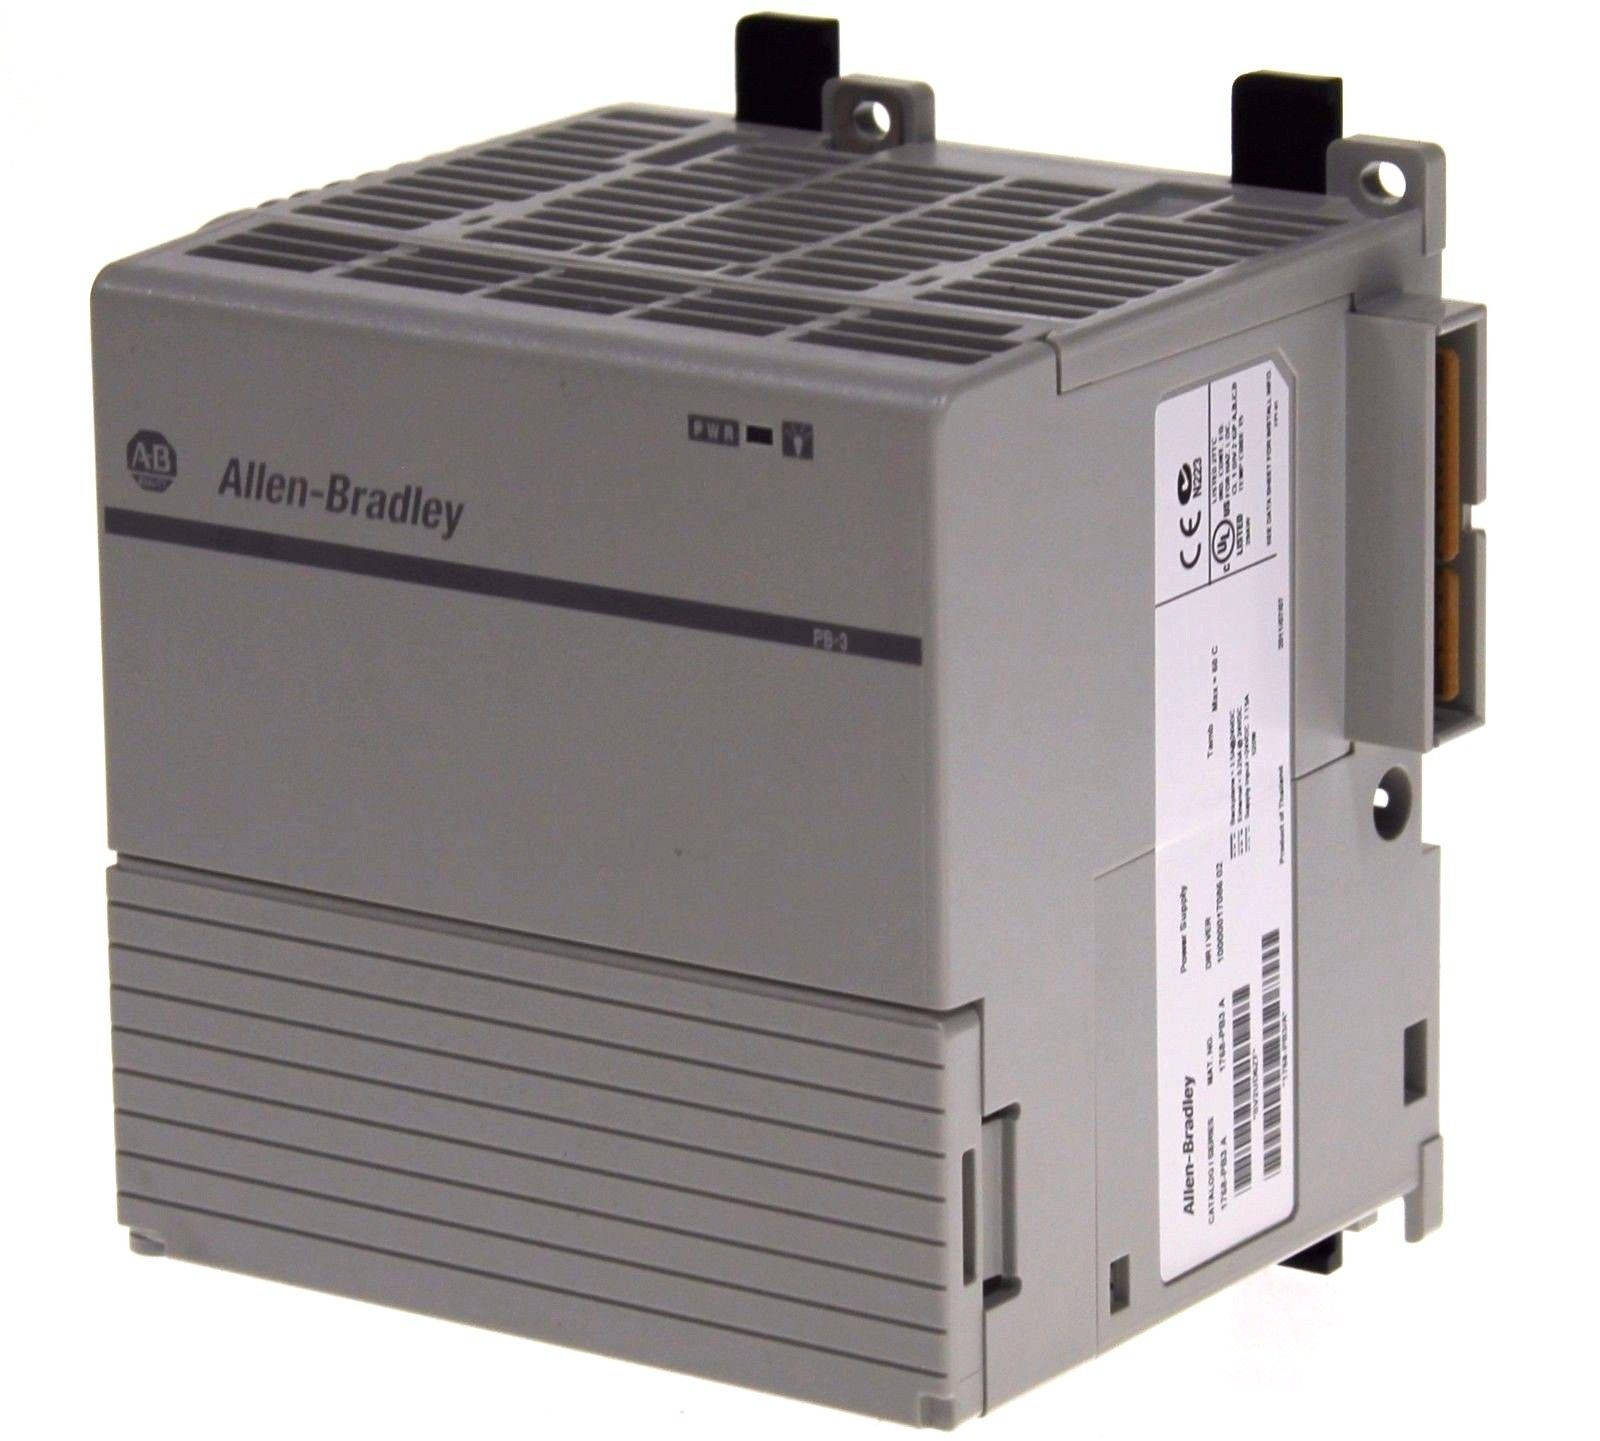 Allen Bradley 1768-PB3 A CompactLogix D/C Power Supply 24VDC @ 7.15 Amp 120 W